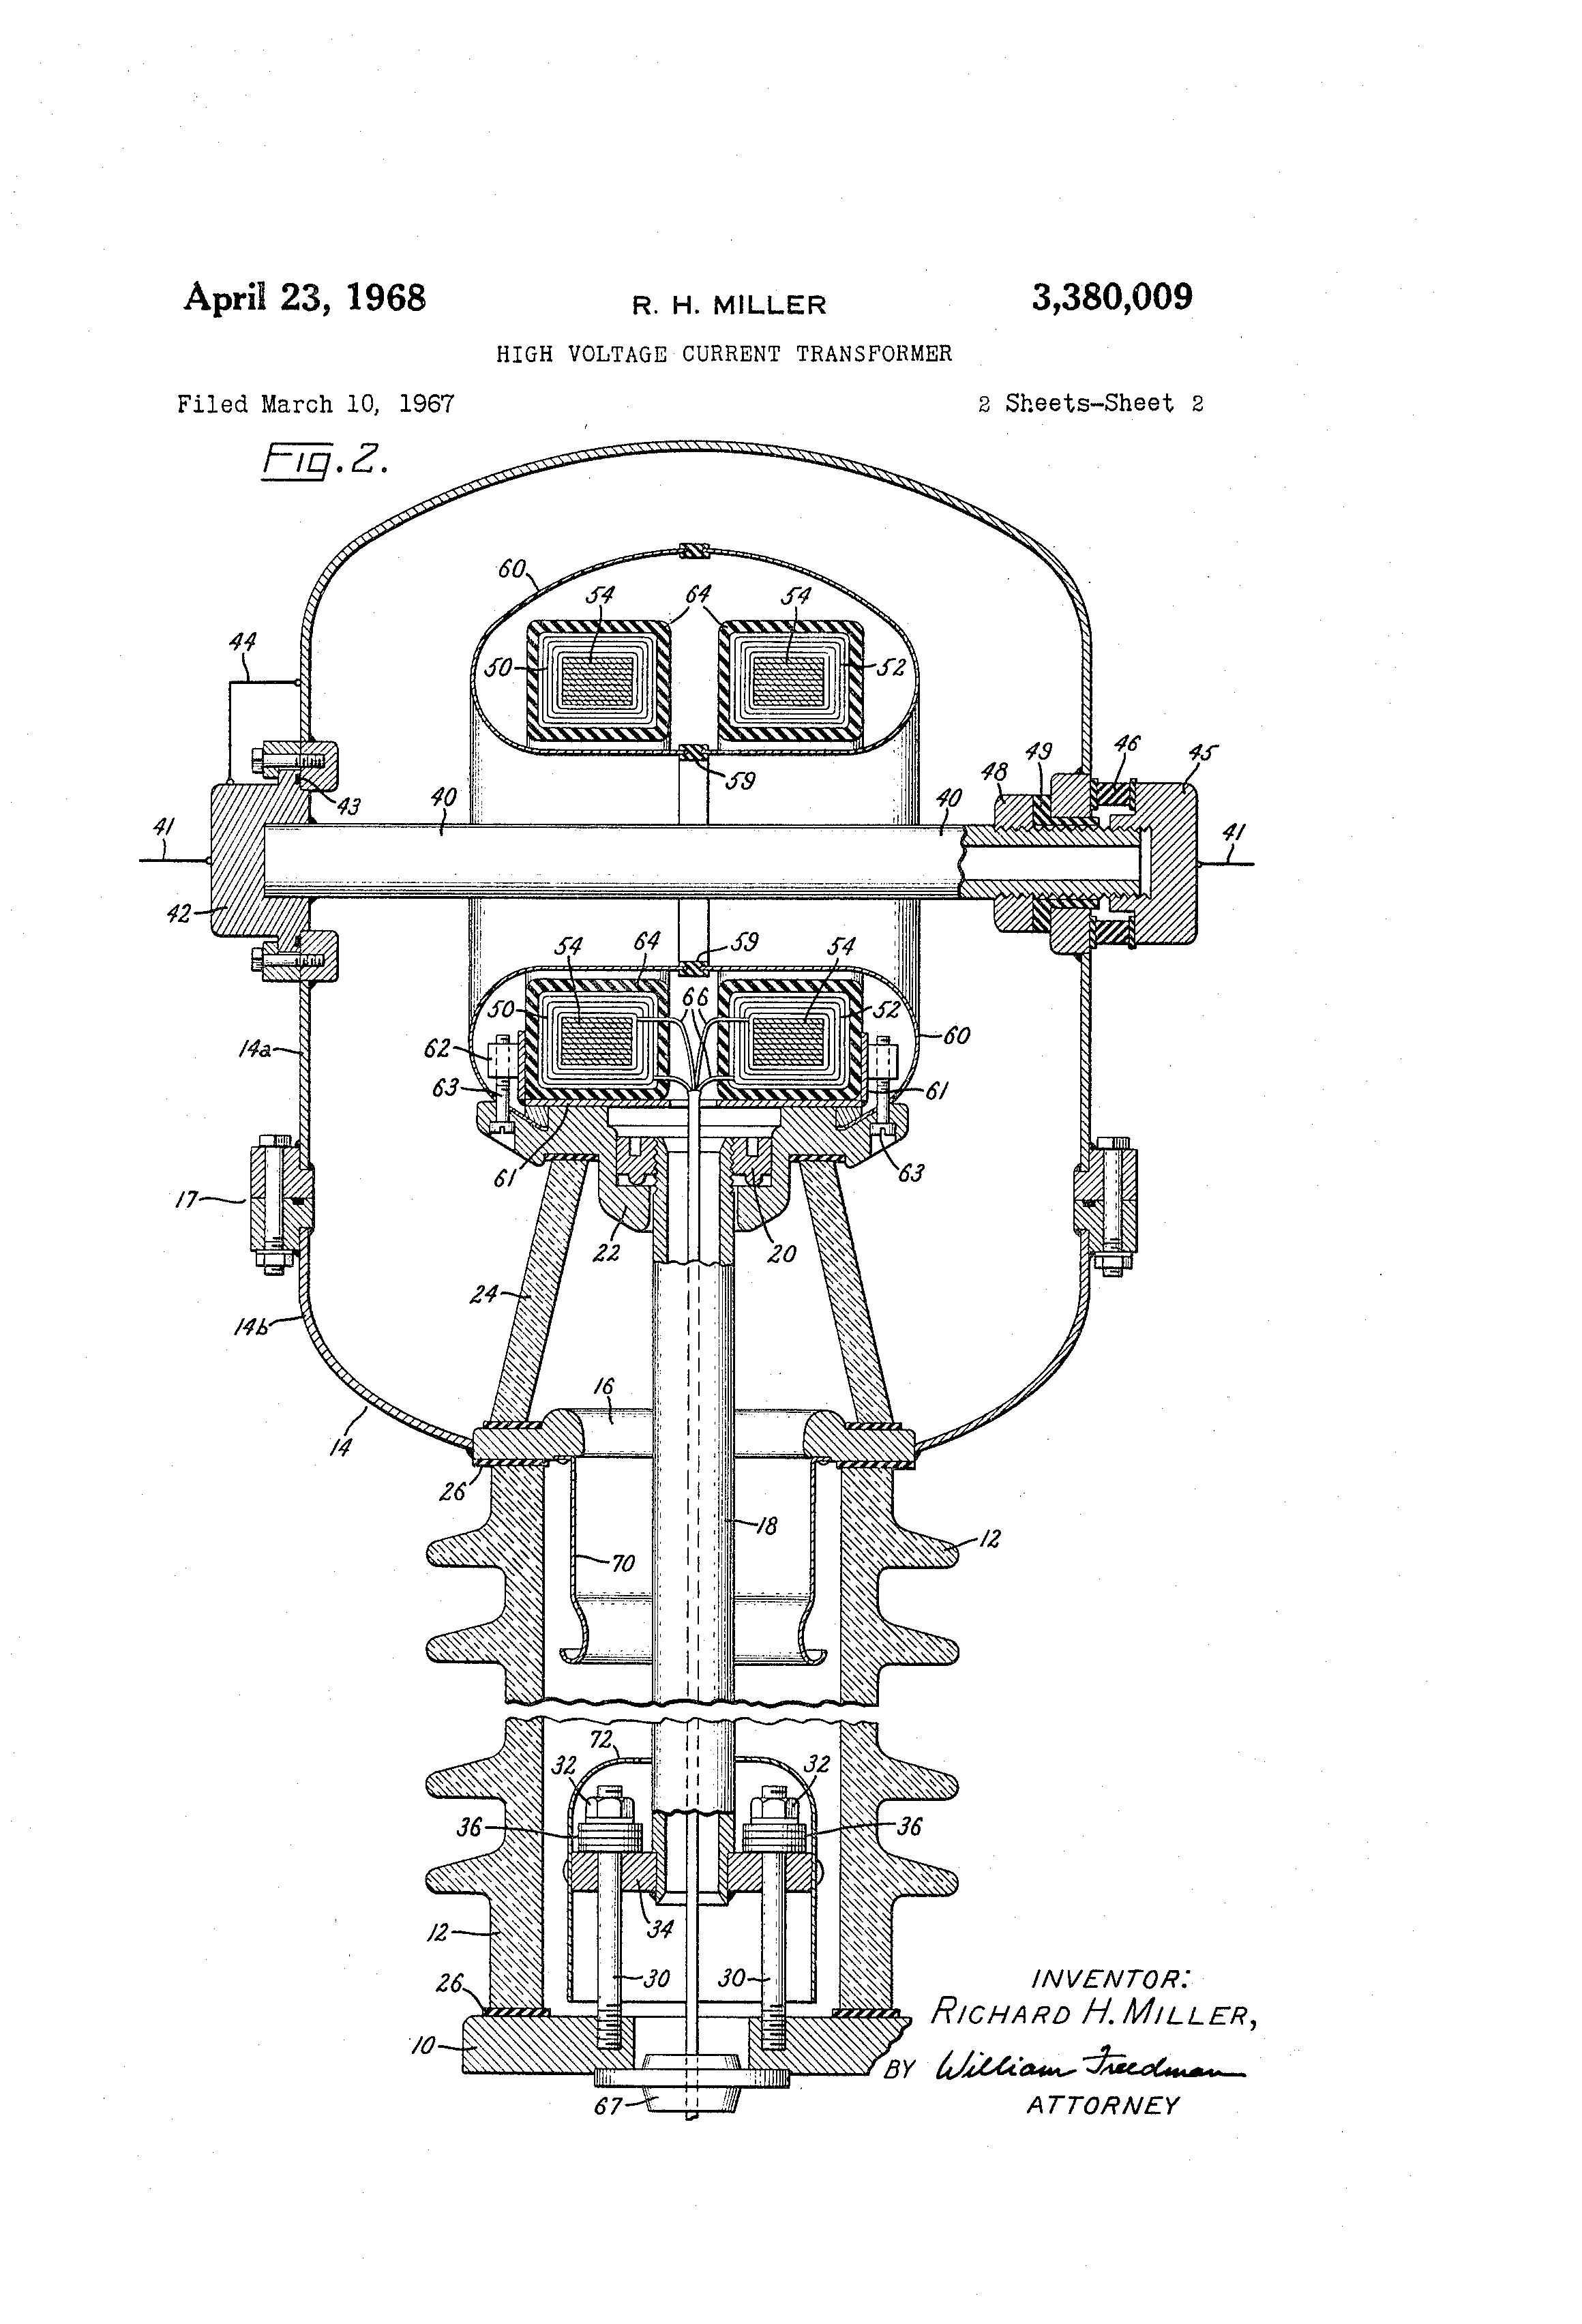 patent us3380009 - high voltage current transformer